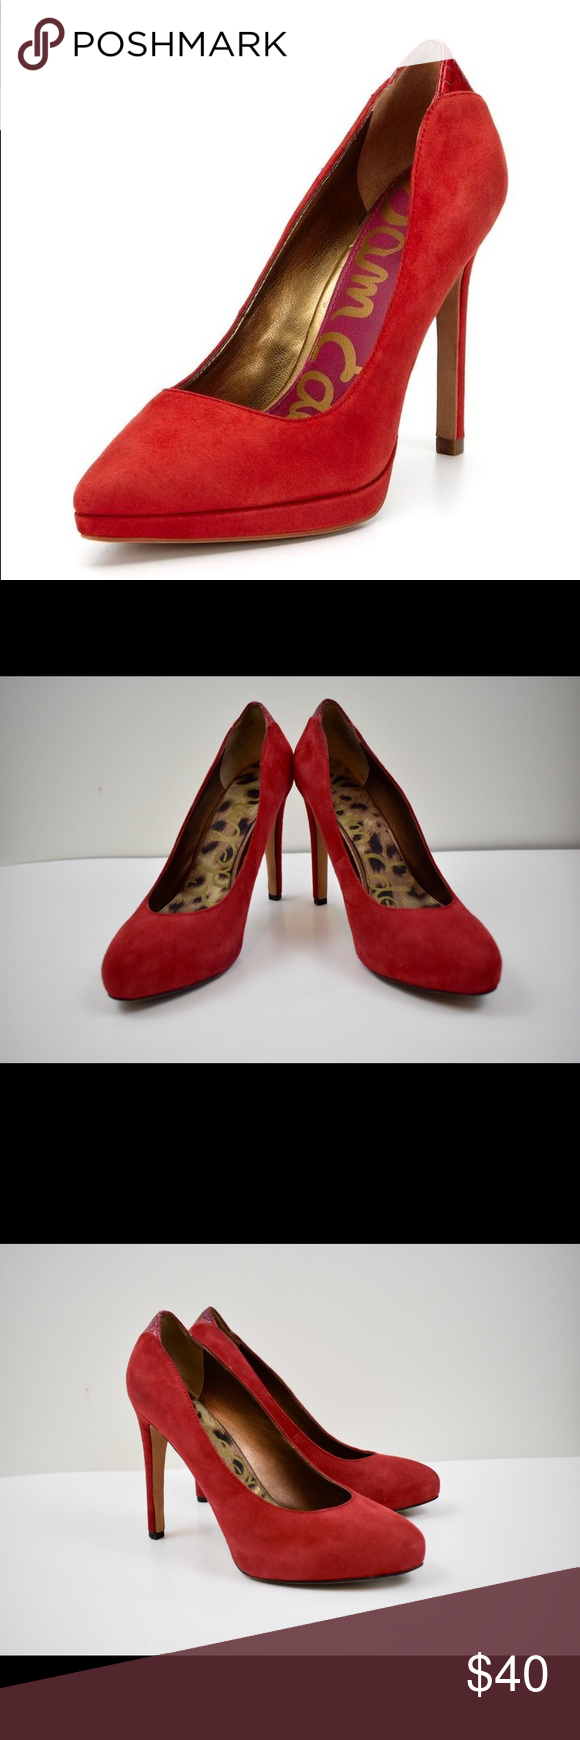 ee5b8a7fabbca3 Sam Edelman Celia Red Suede High Heels Size 6.5 Sexy red pumps. These Sam  Edelman